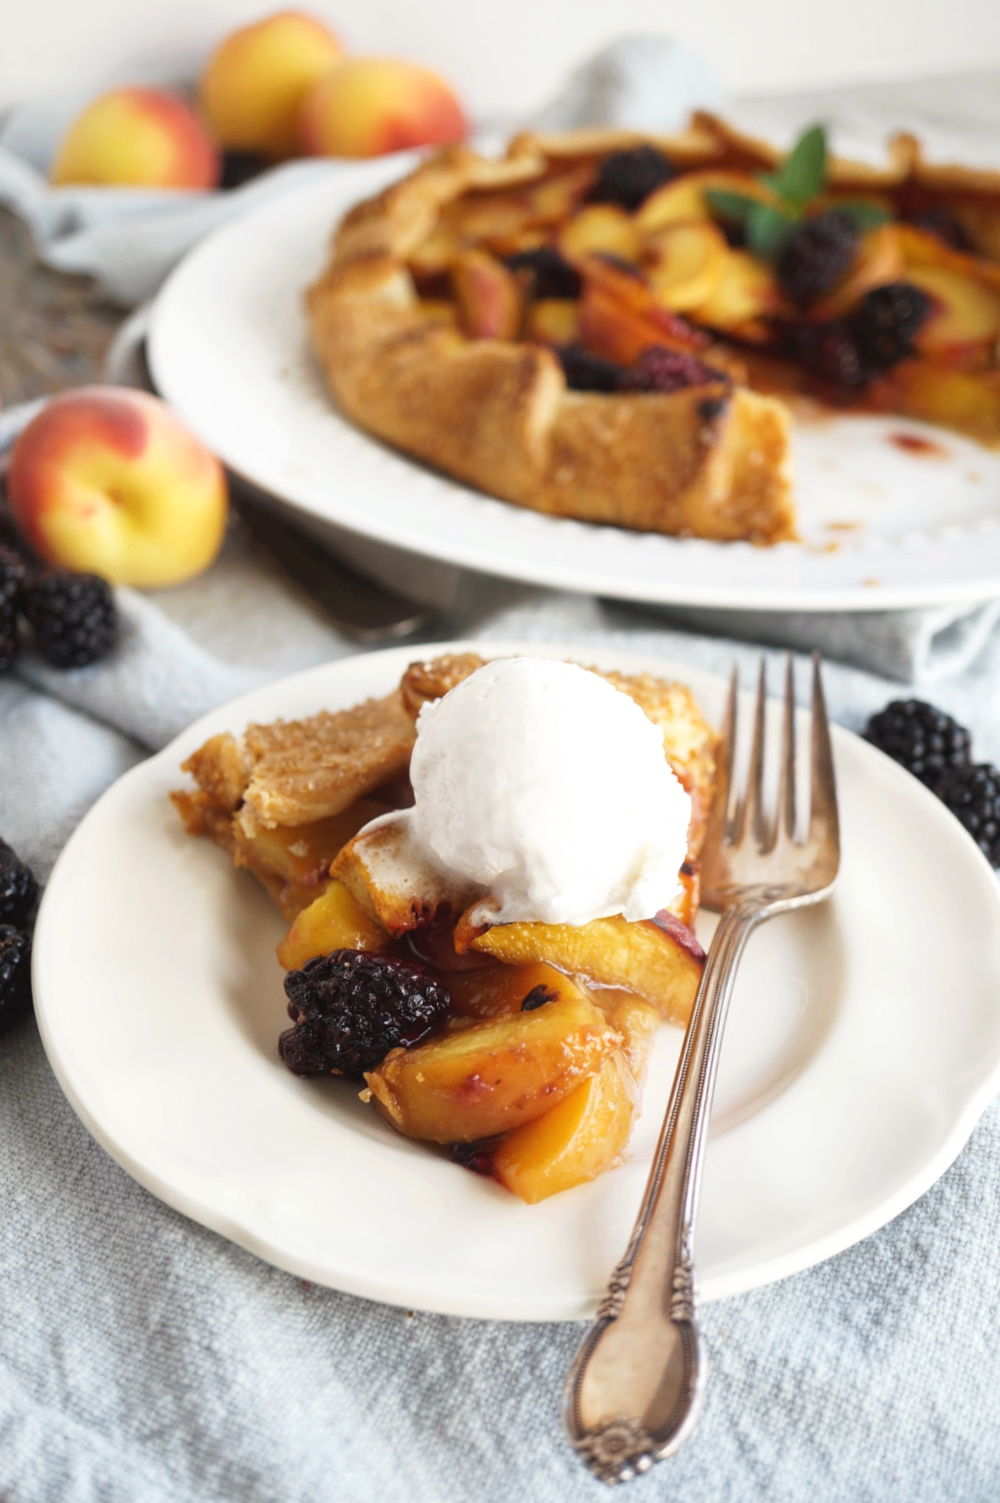 slice of blackberry peach galette on plate with ice cream